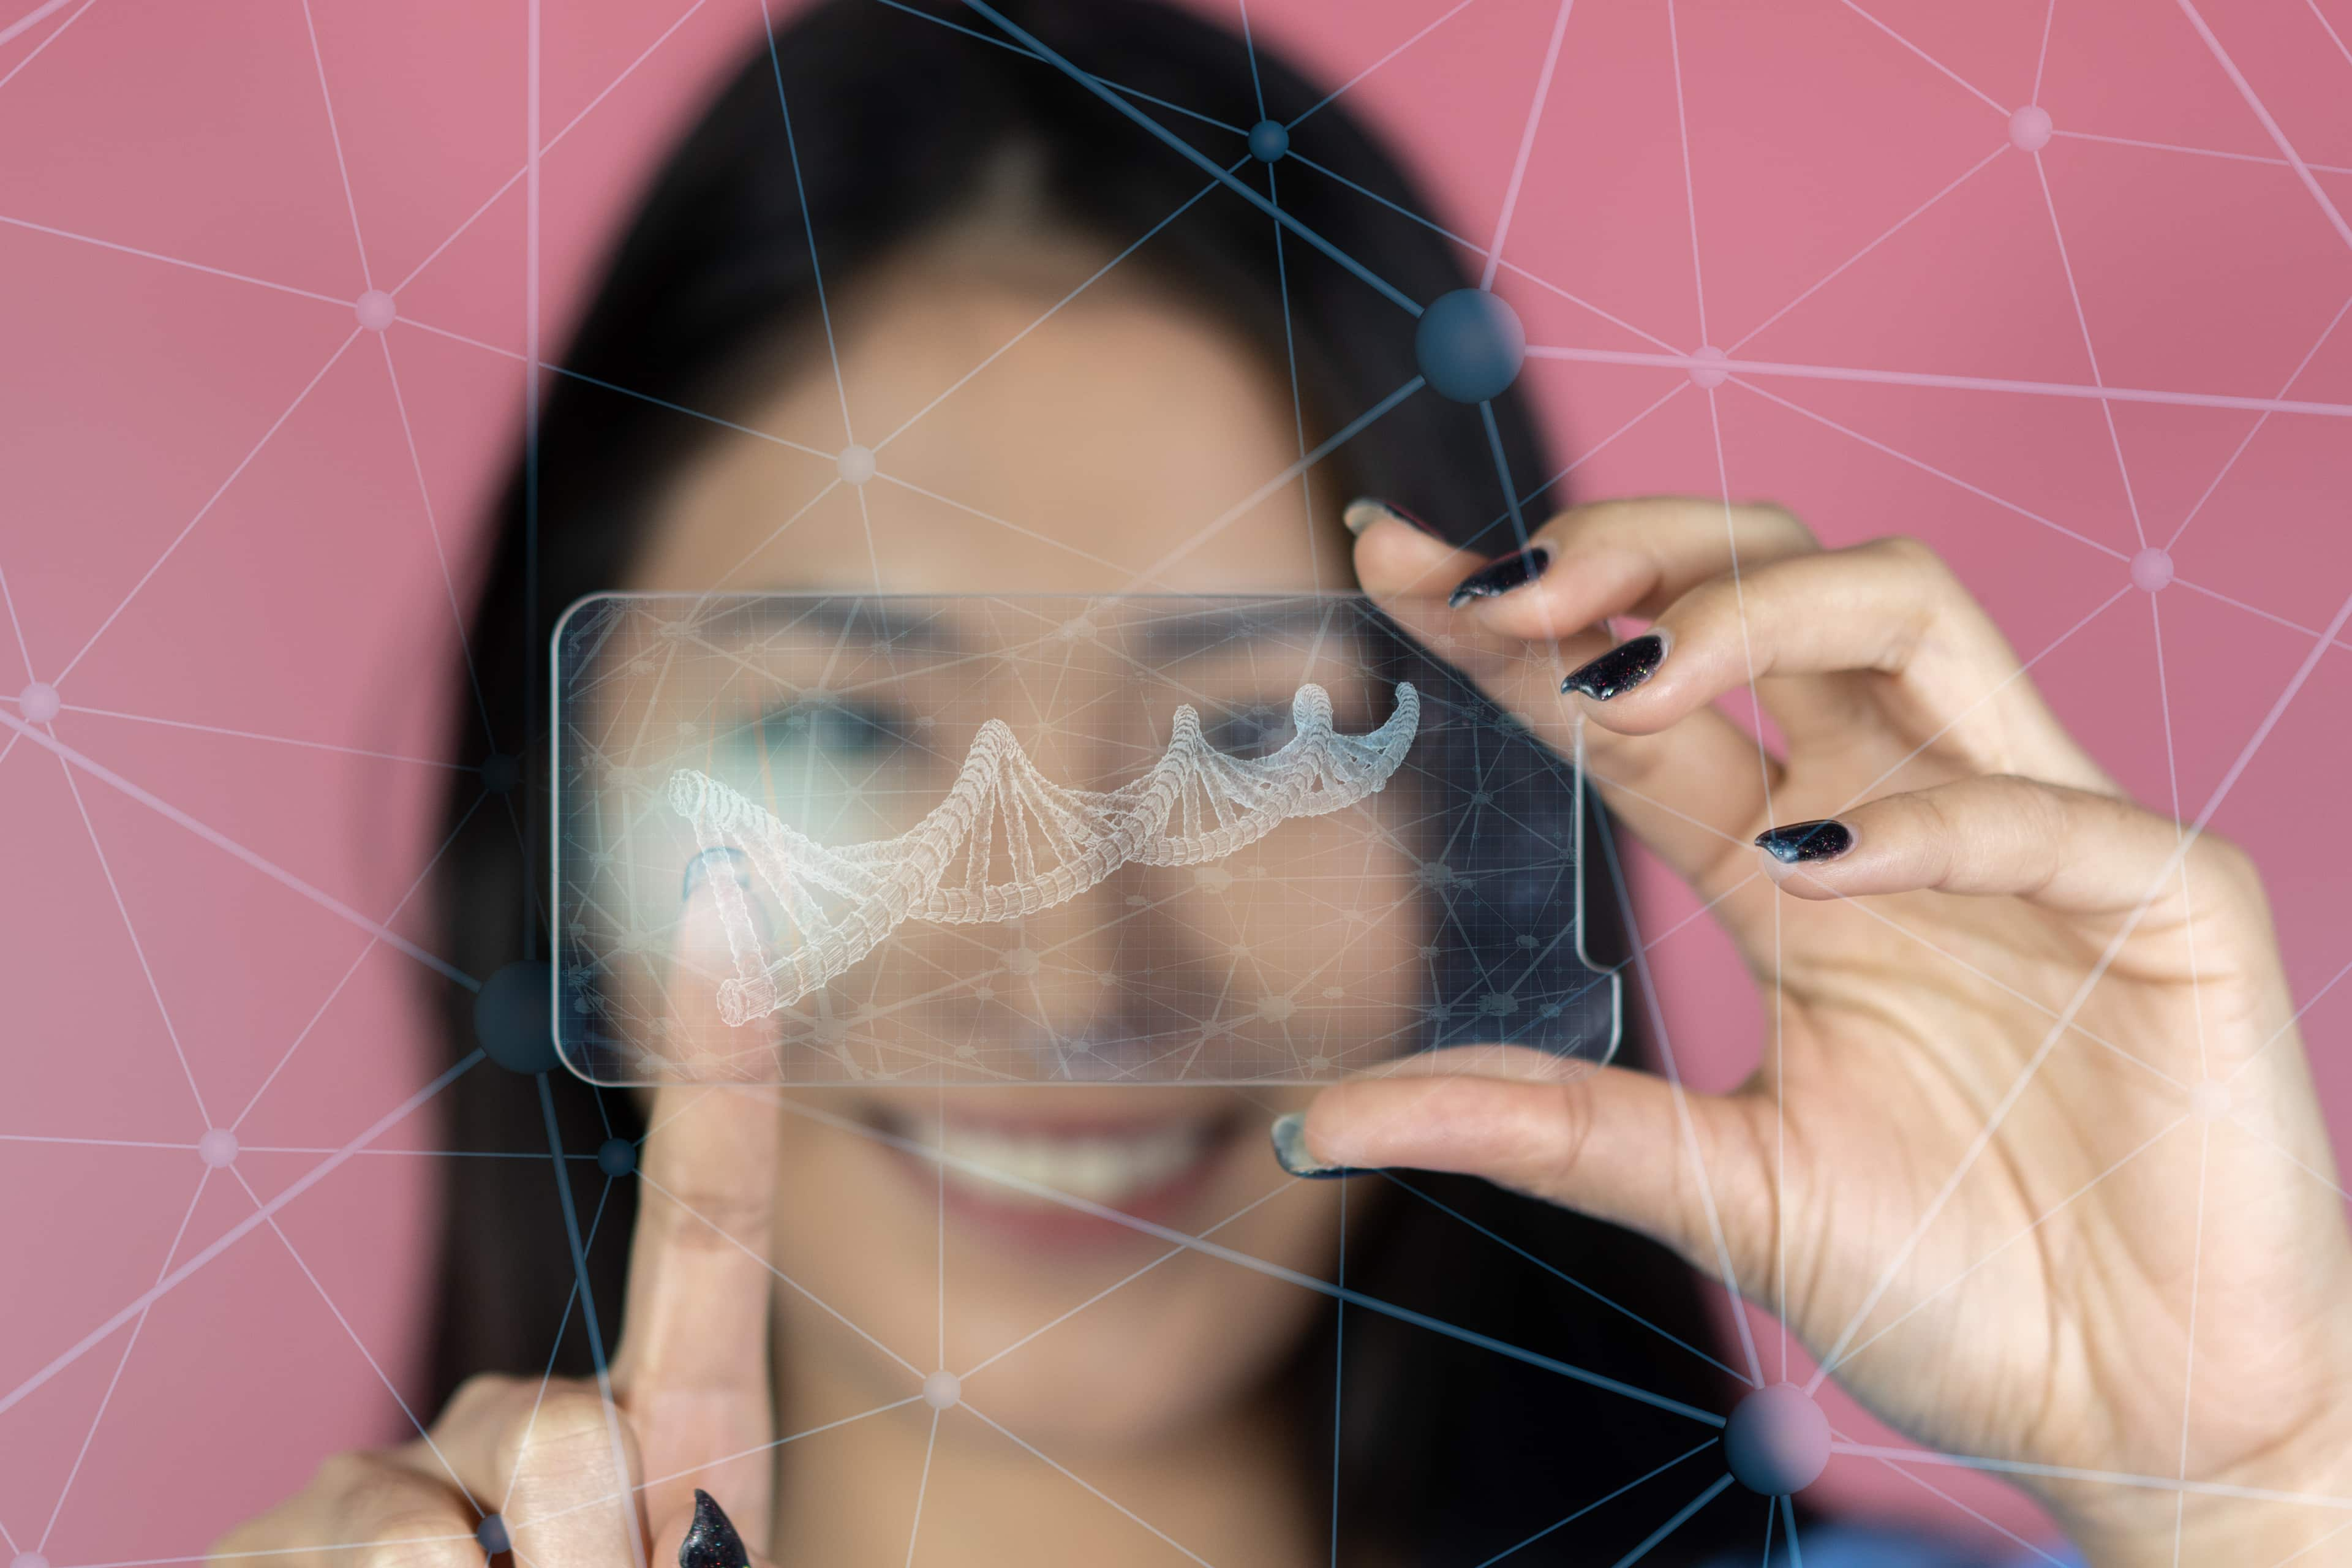 A woman looks at the camera through a graphic of a DNA double helix